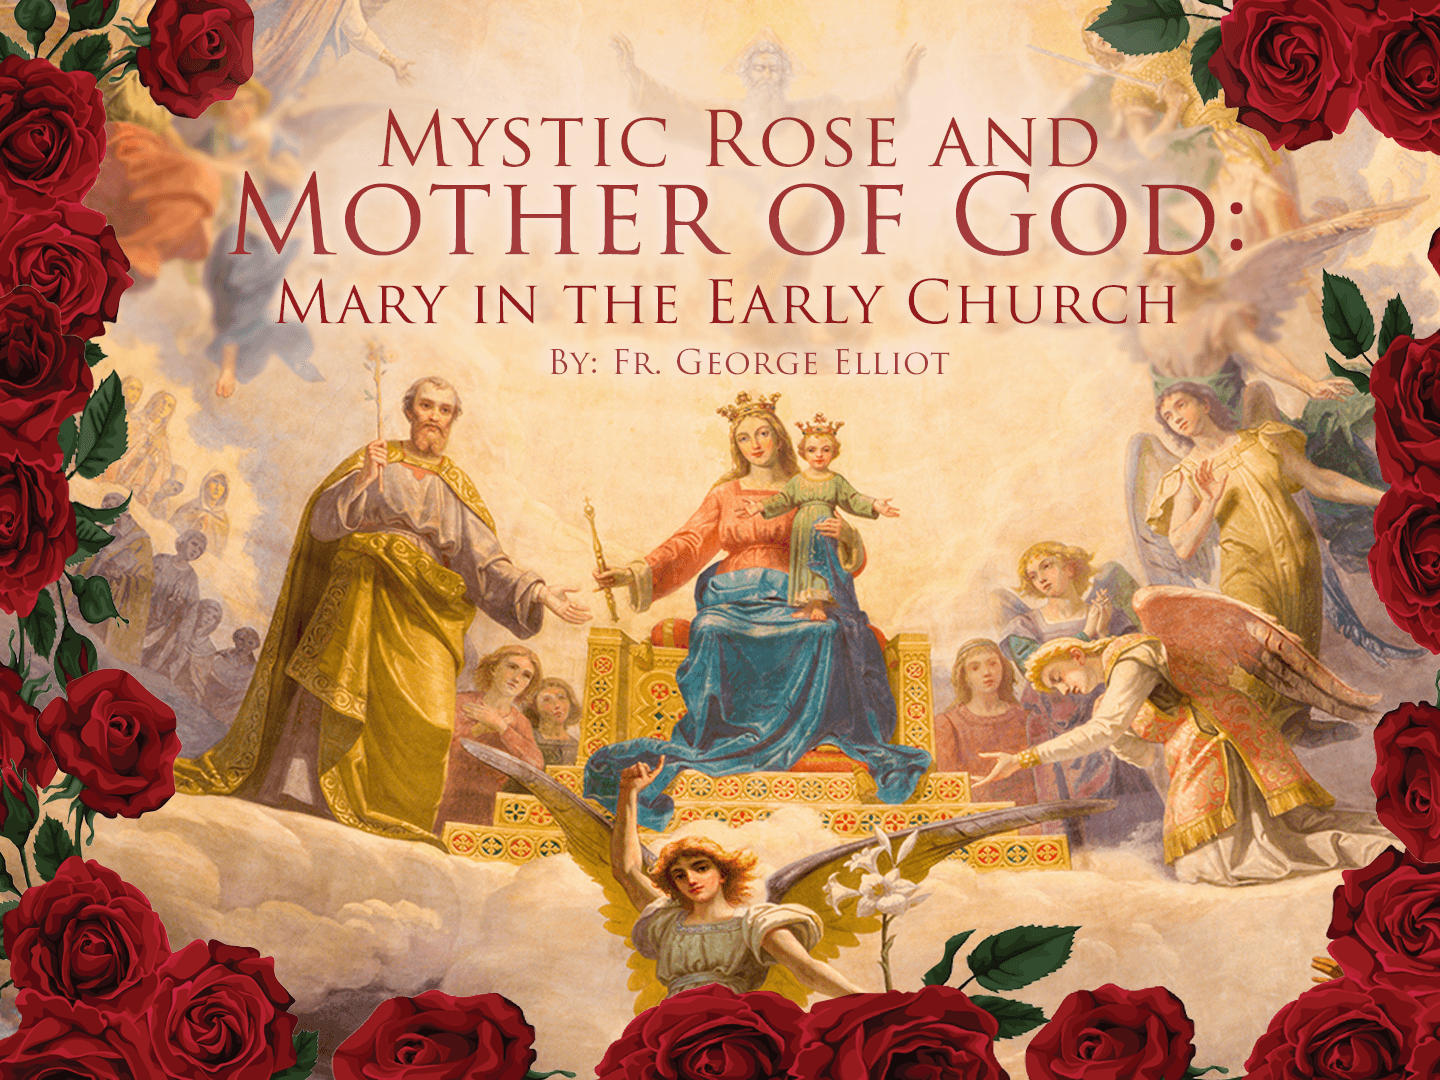 Mystical Rose and Mother of God: Mary in the Early Church